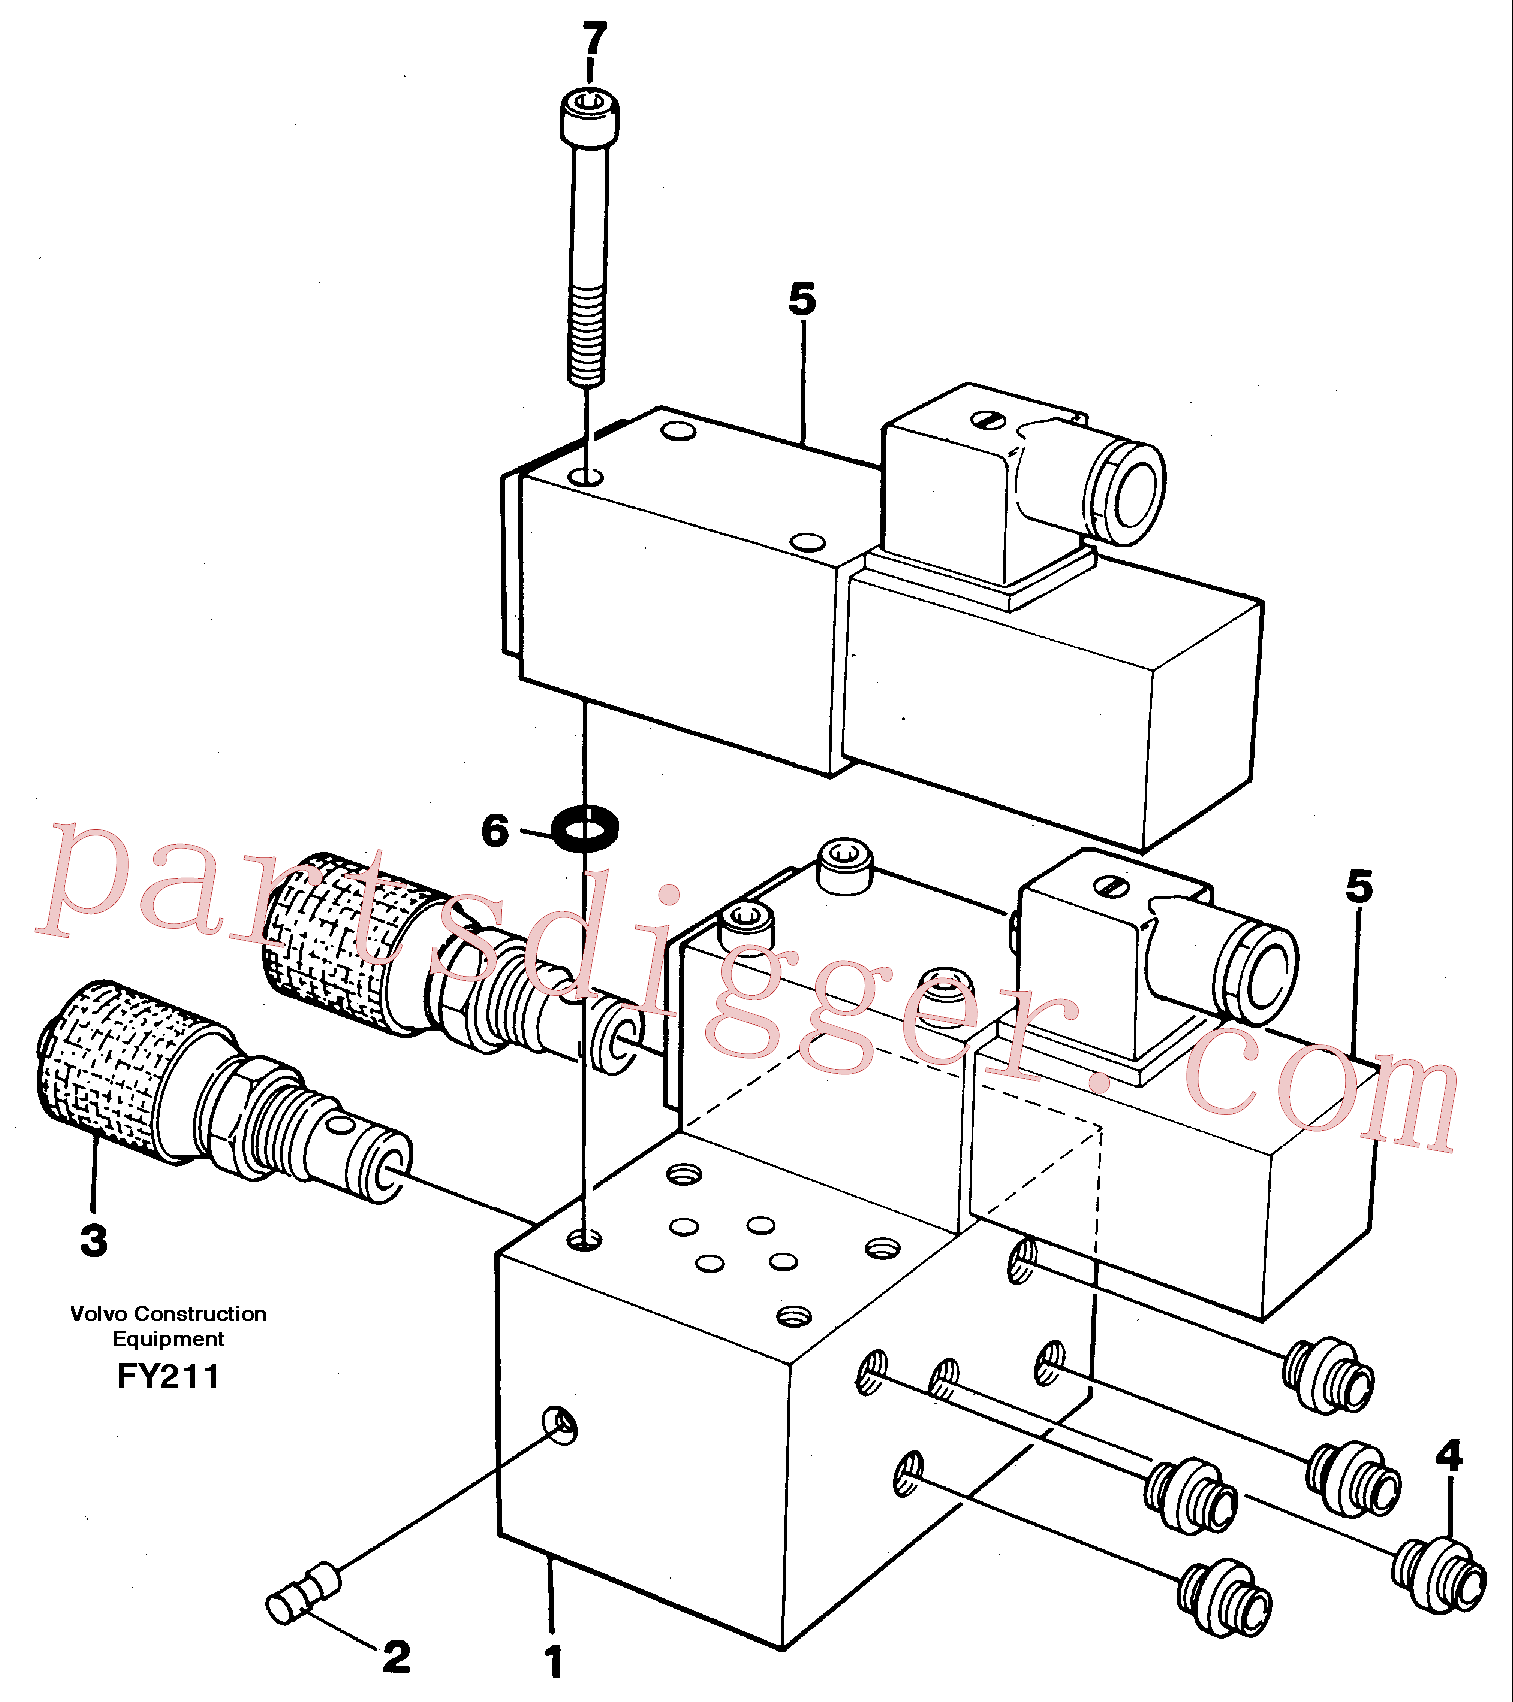 VOE14243114 for Volvo Control block, end pos. dampening(FY211 assembly)